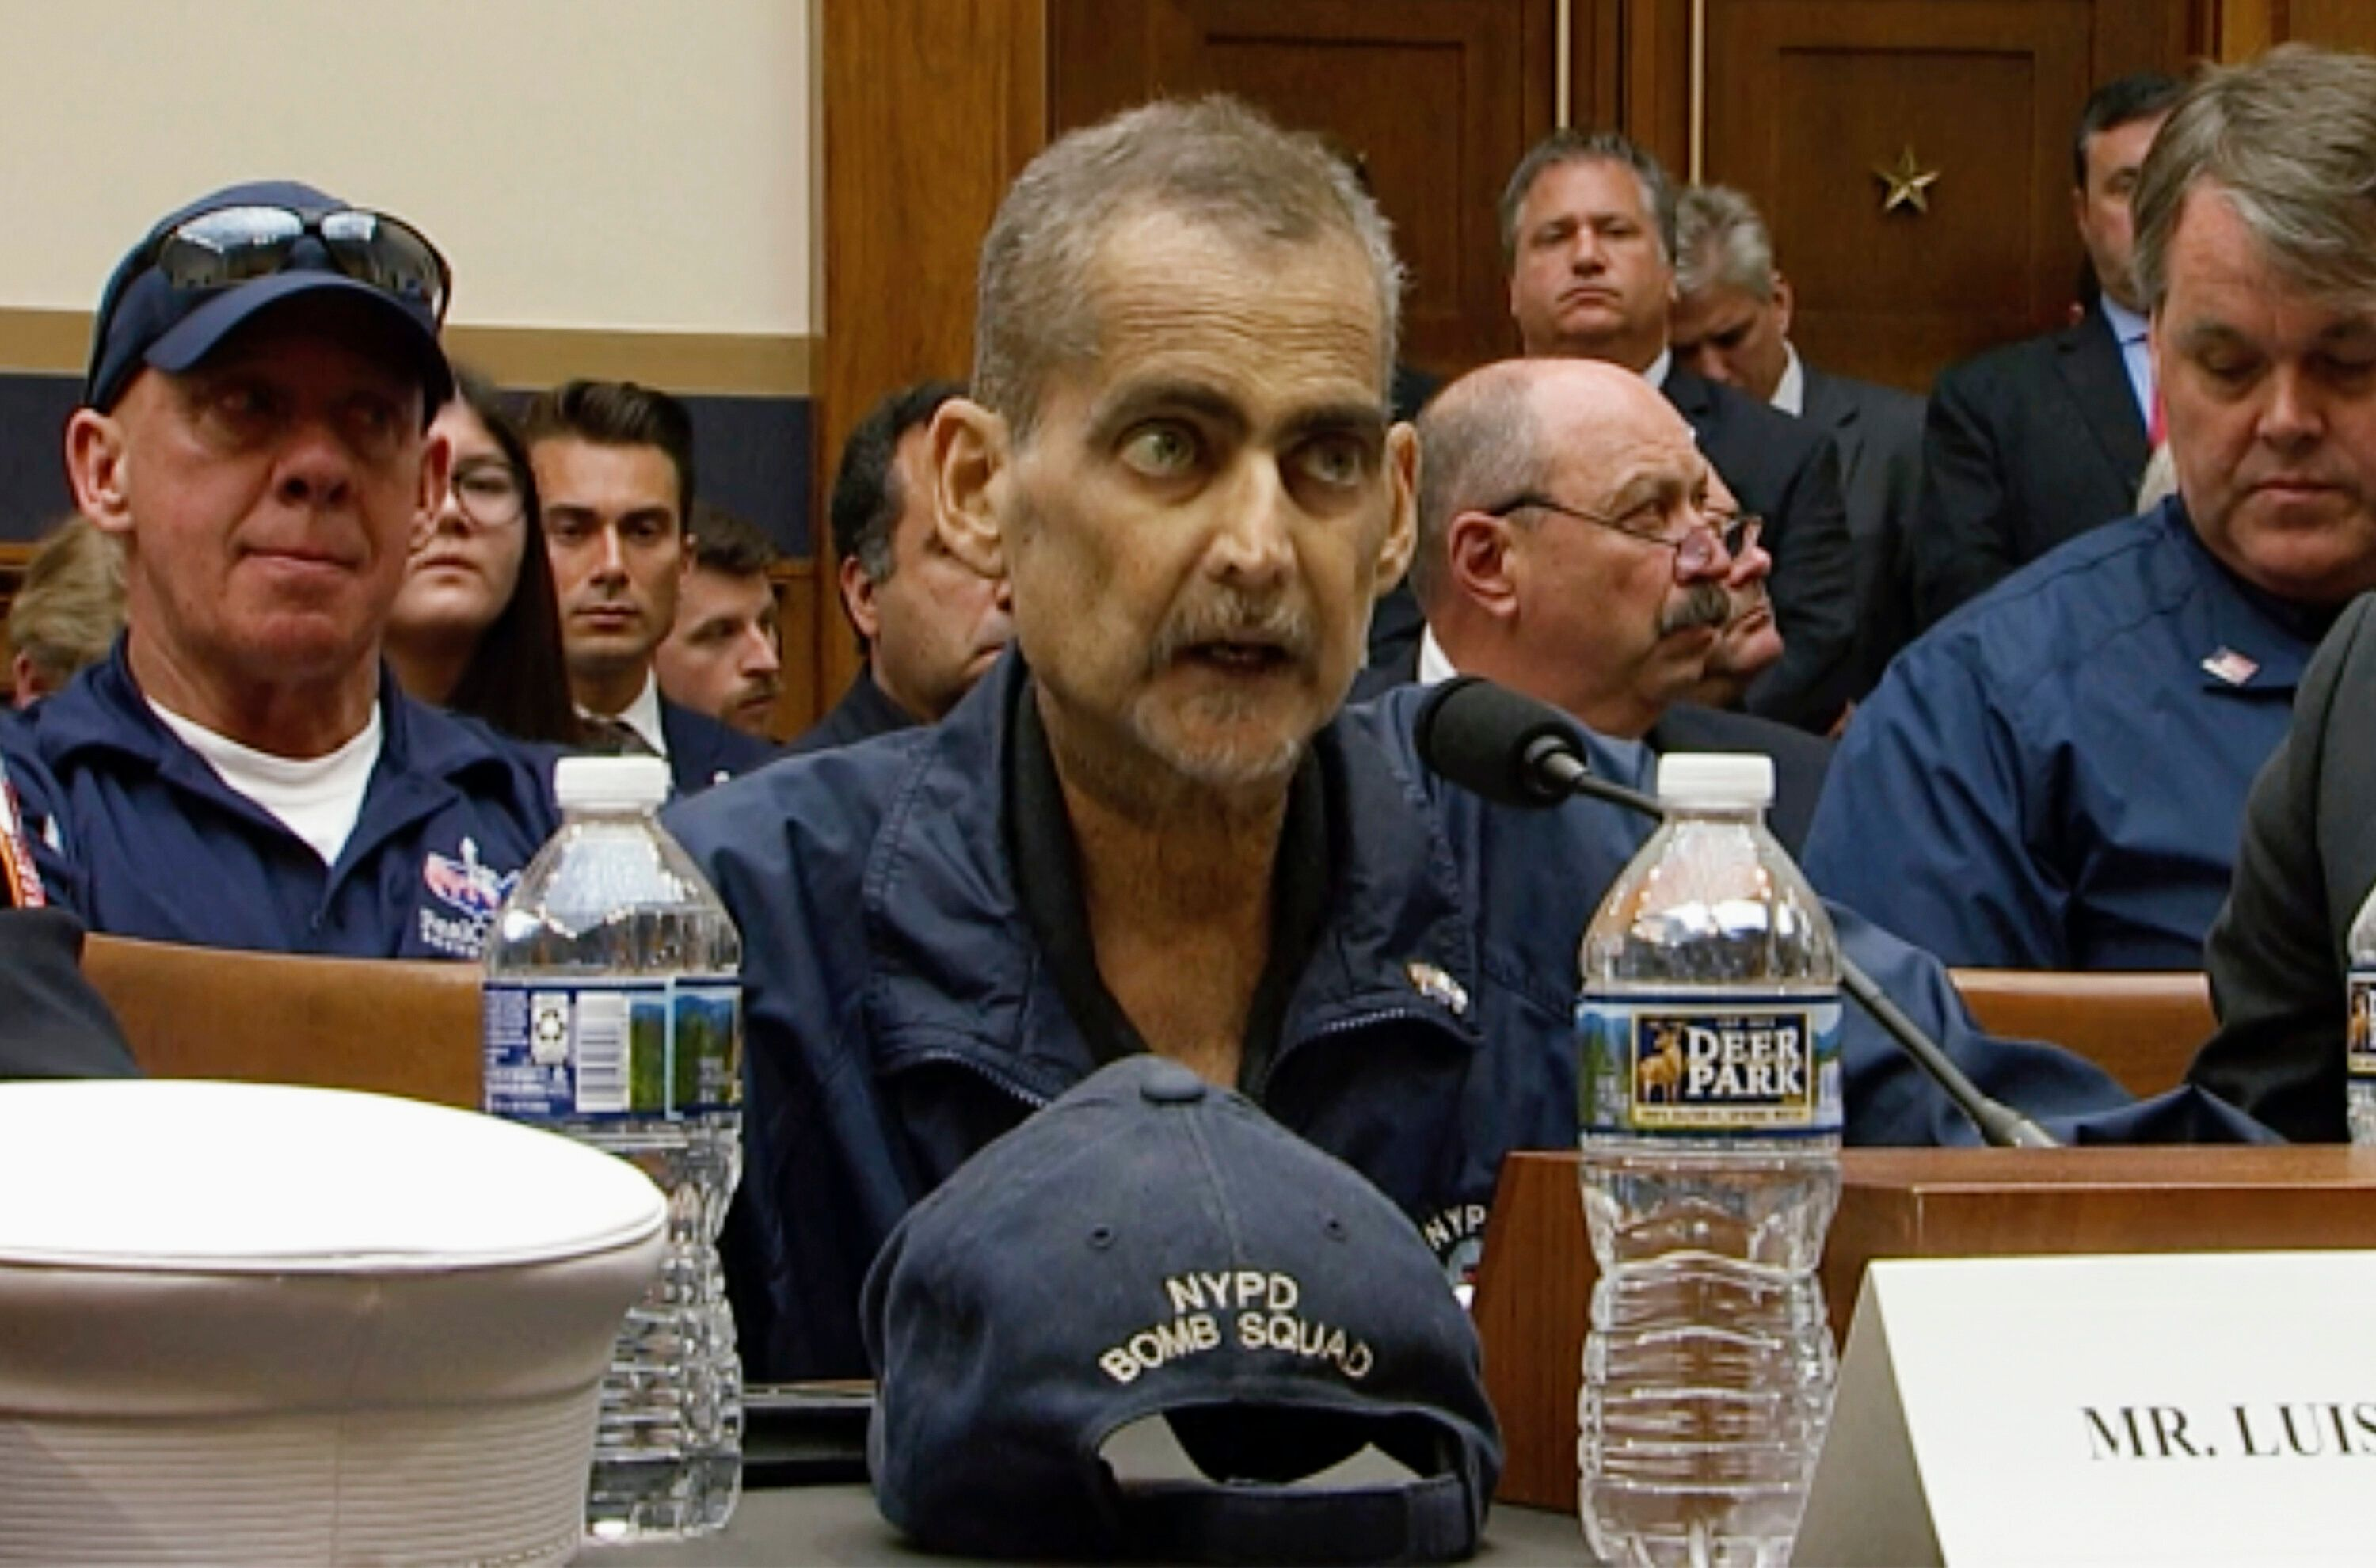 Retired New York police detective and 9/11 responder Luis Alvarez testifies during a House Judiciary Committee hearing a